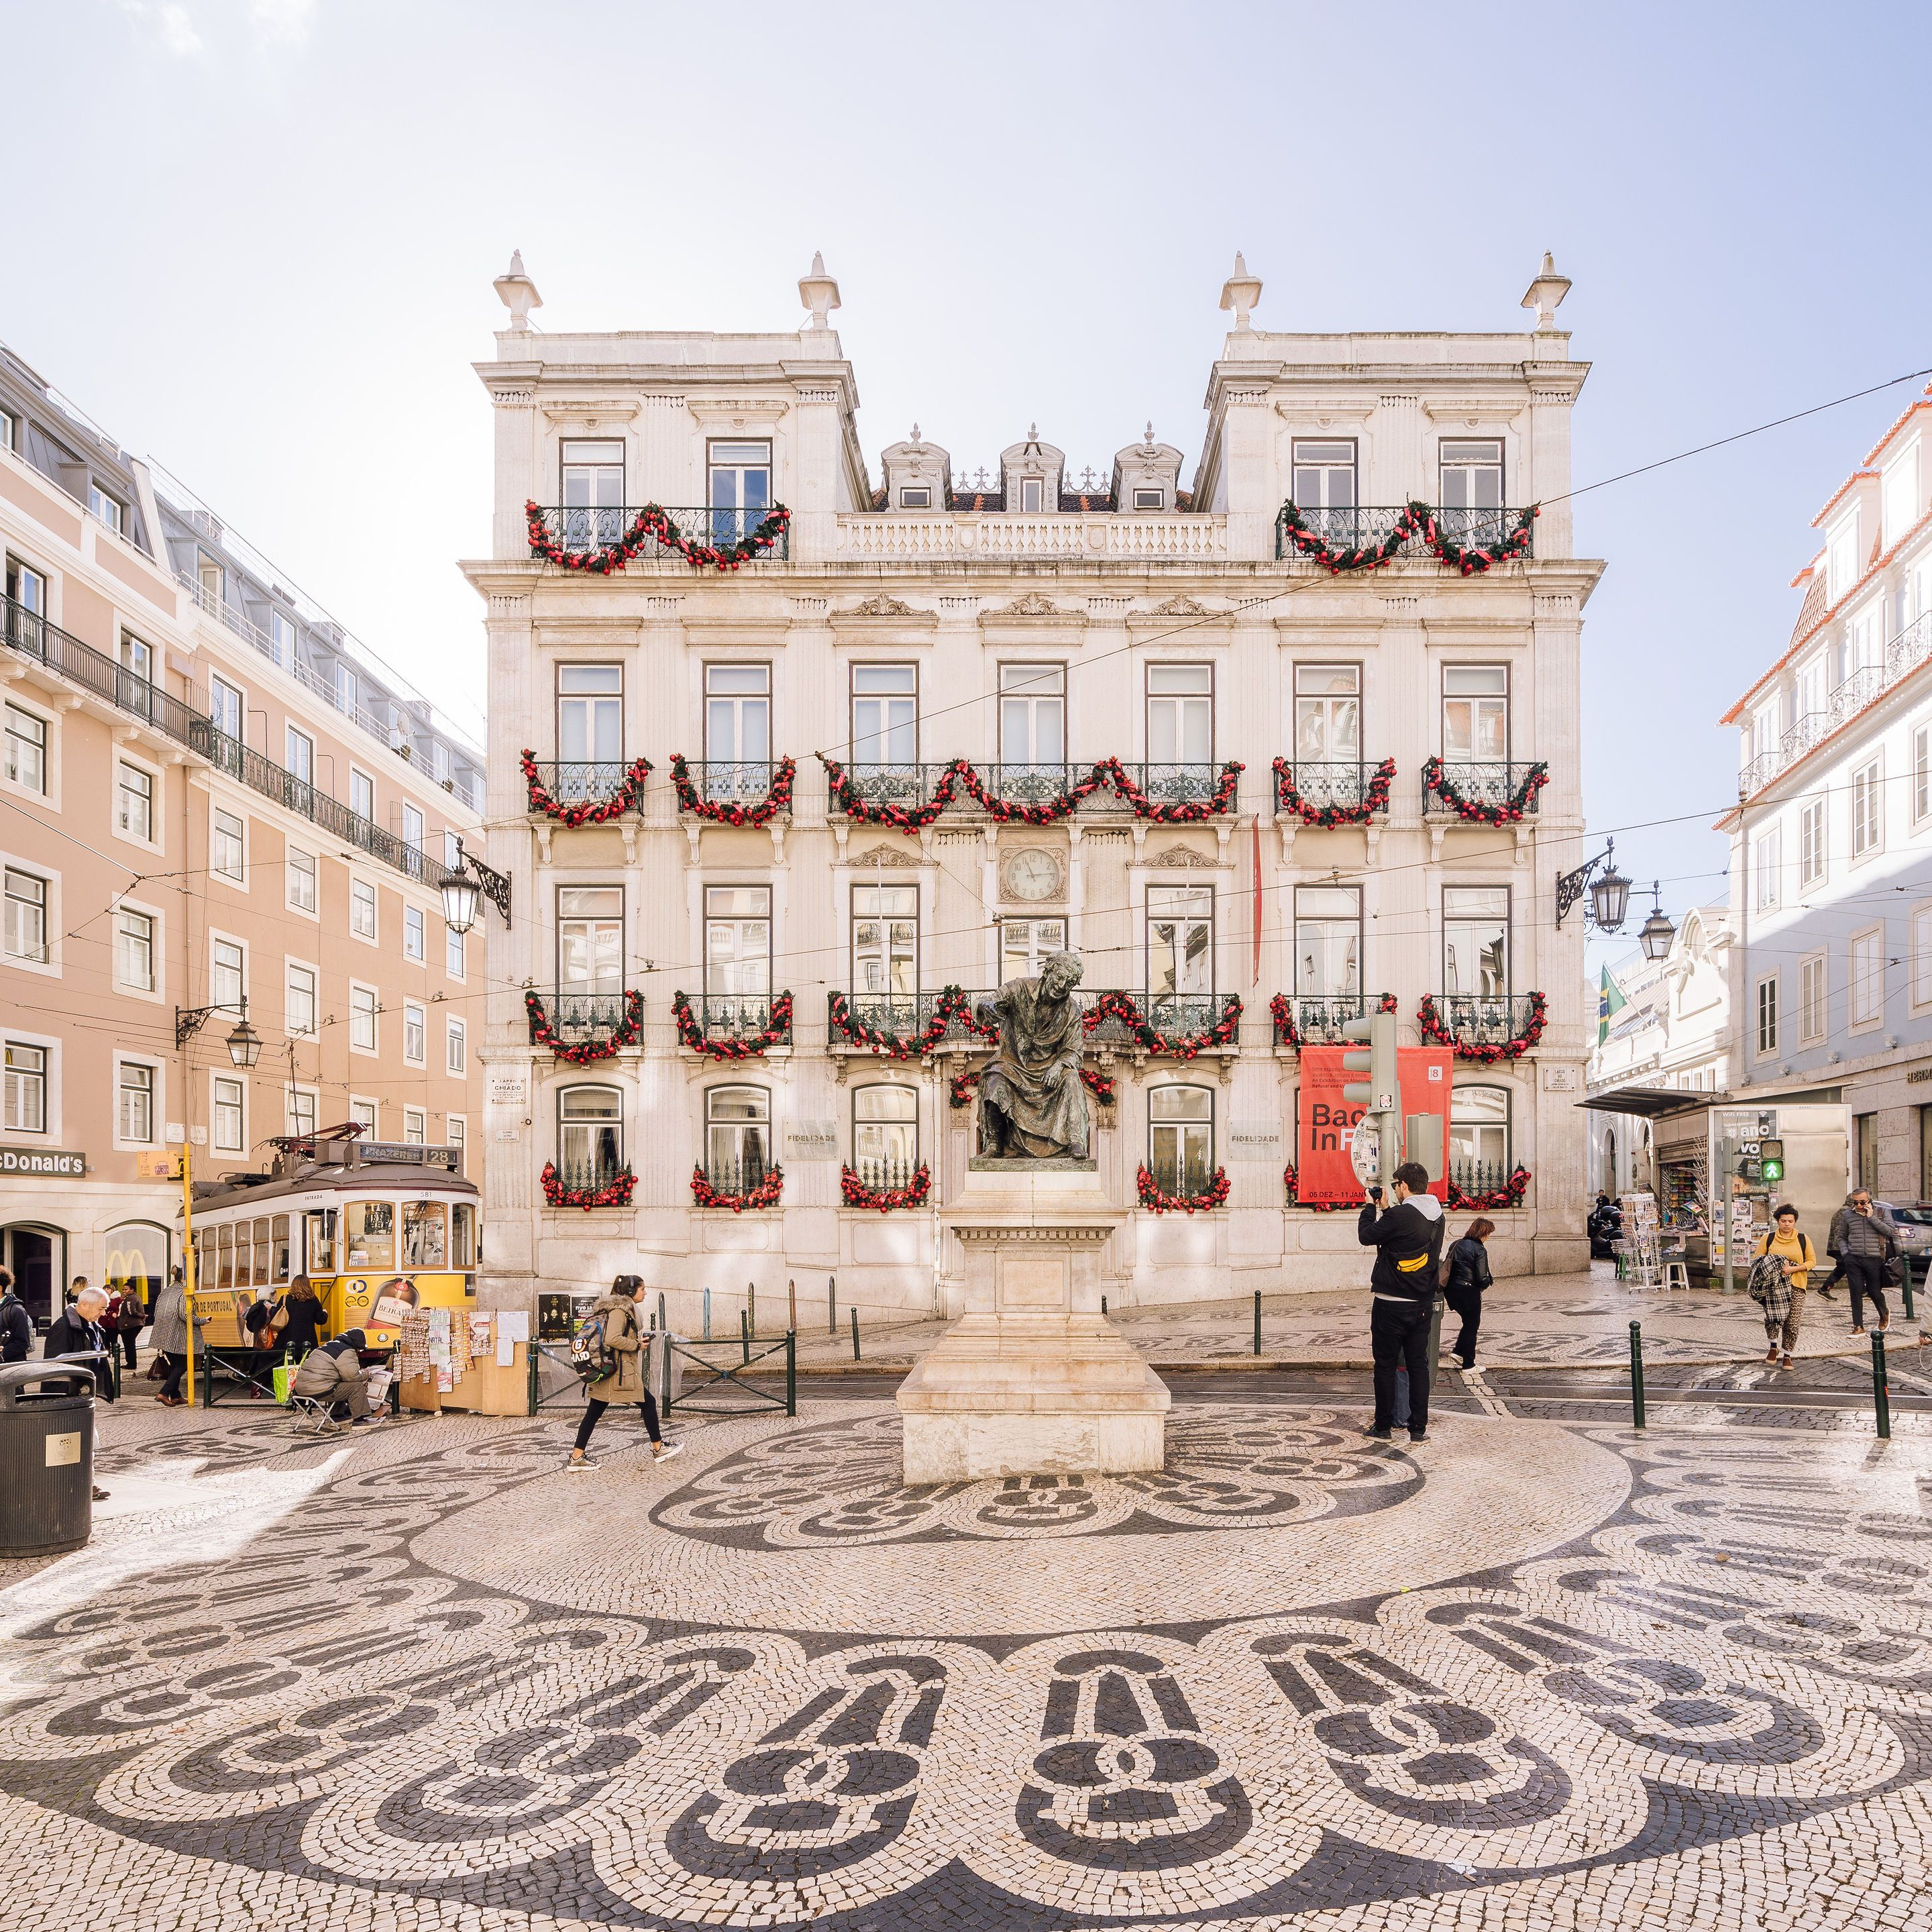 A public plaza in Chiado with a tiled street